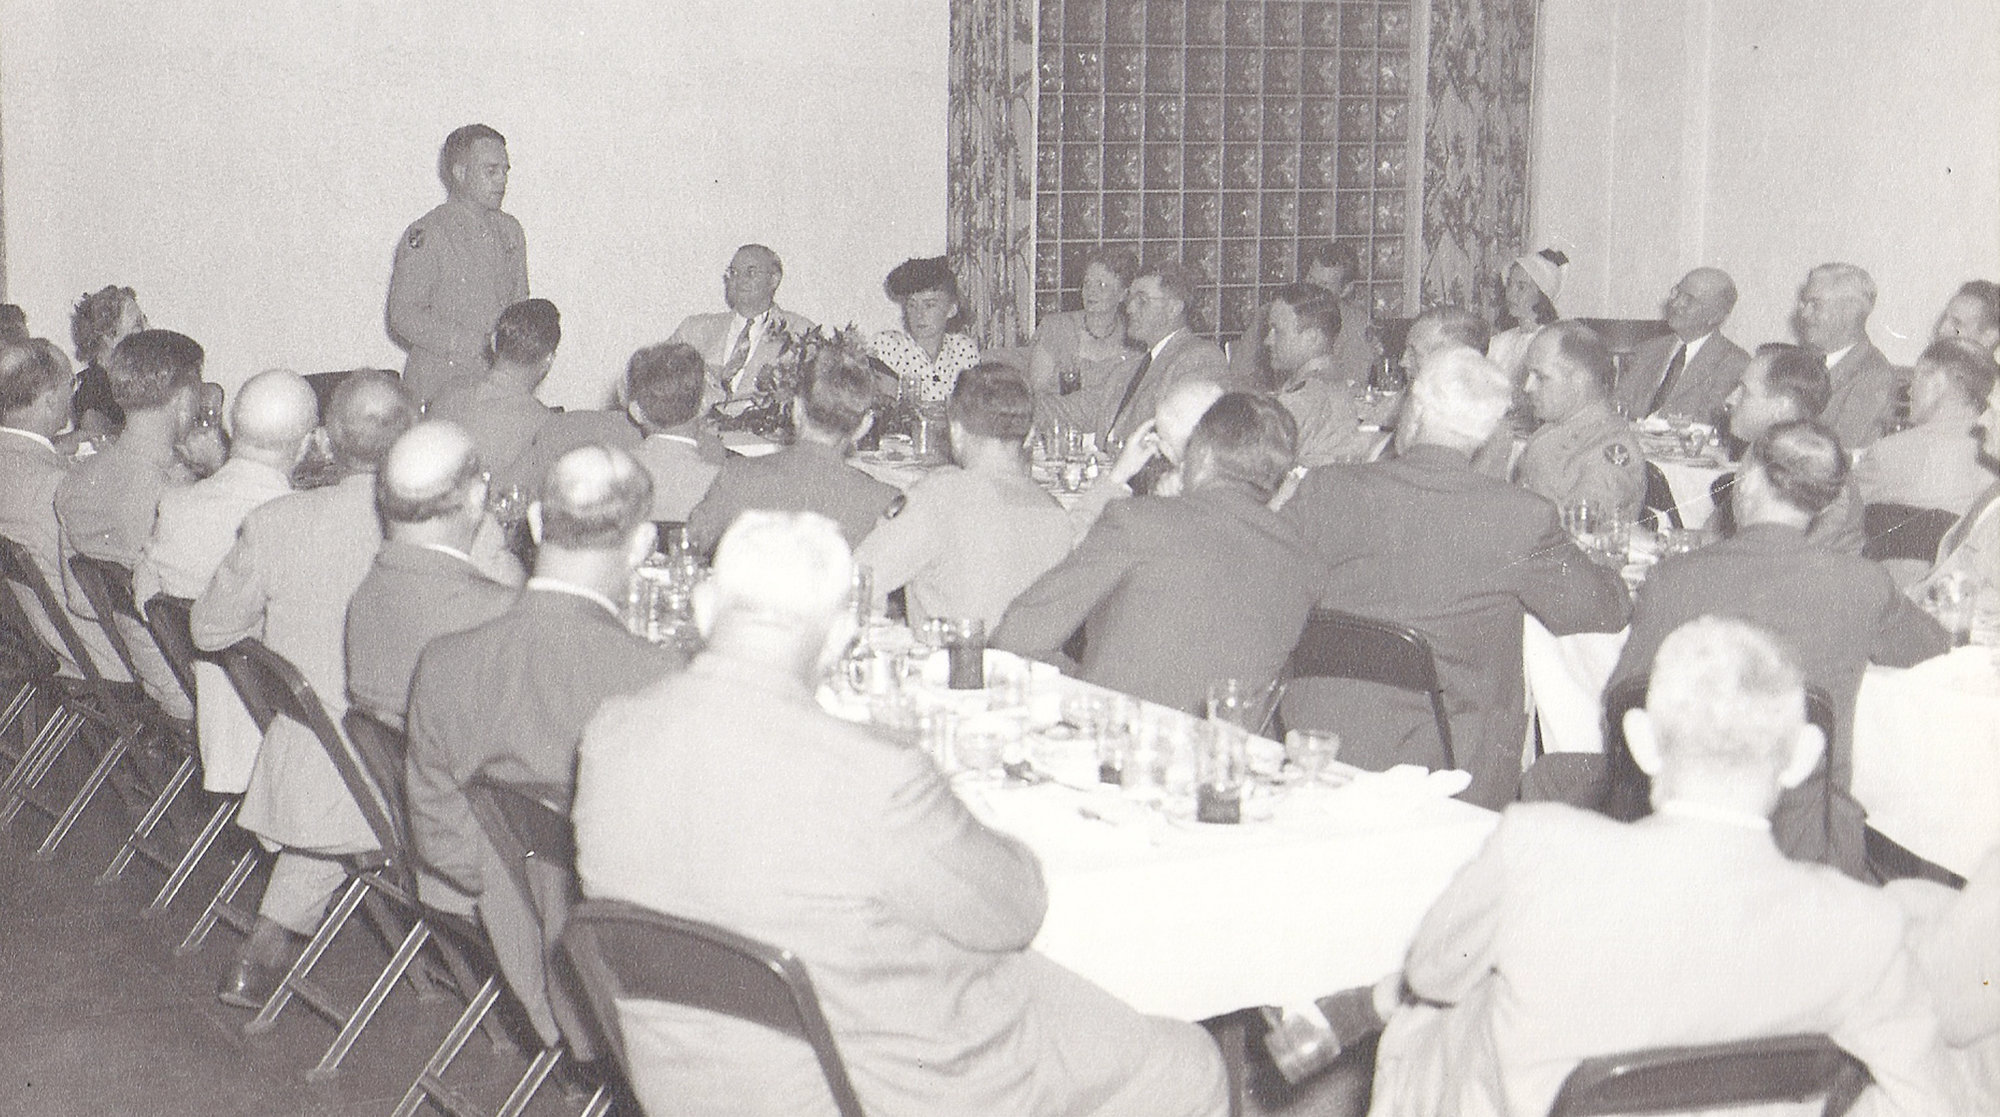 The Coca-Cola Community Room was available for banquets in Sumter, and using the space and its attached kitchen was free to any group who wanted to reserve it.